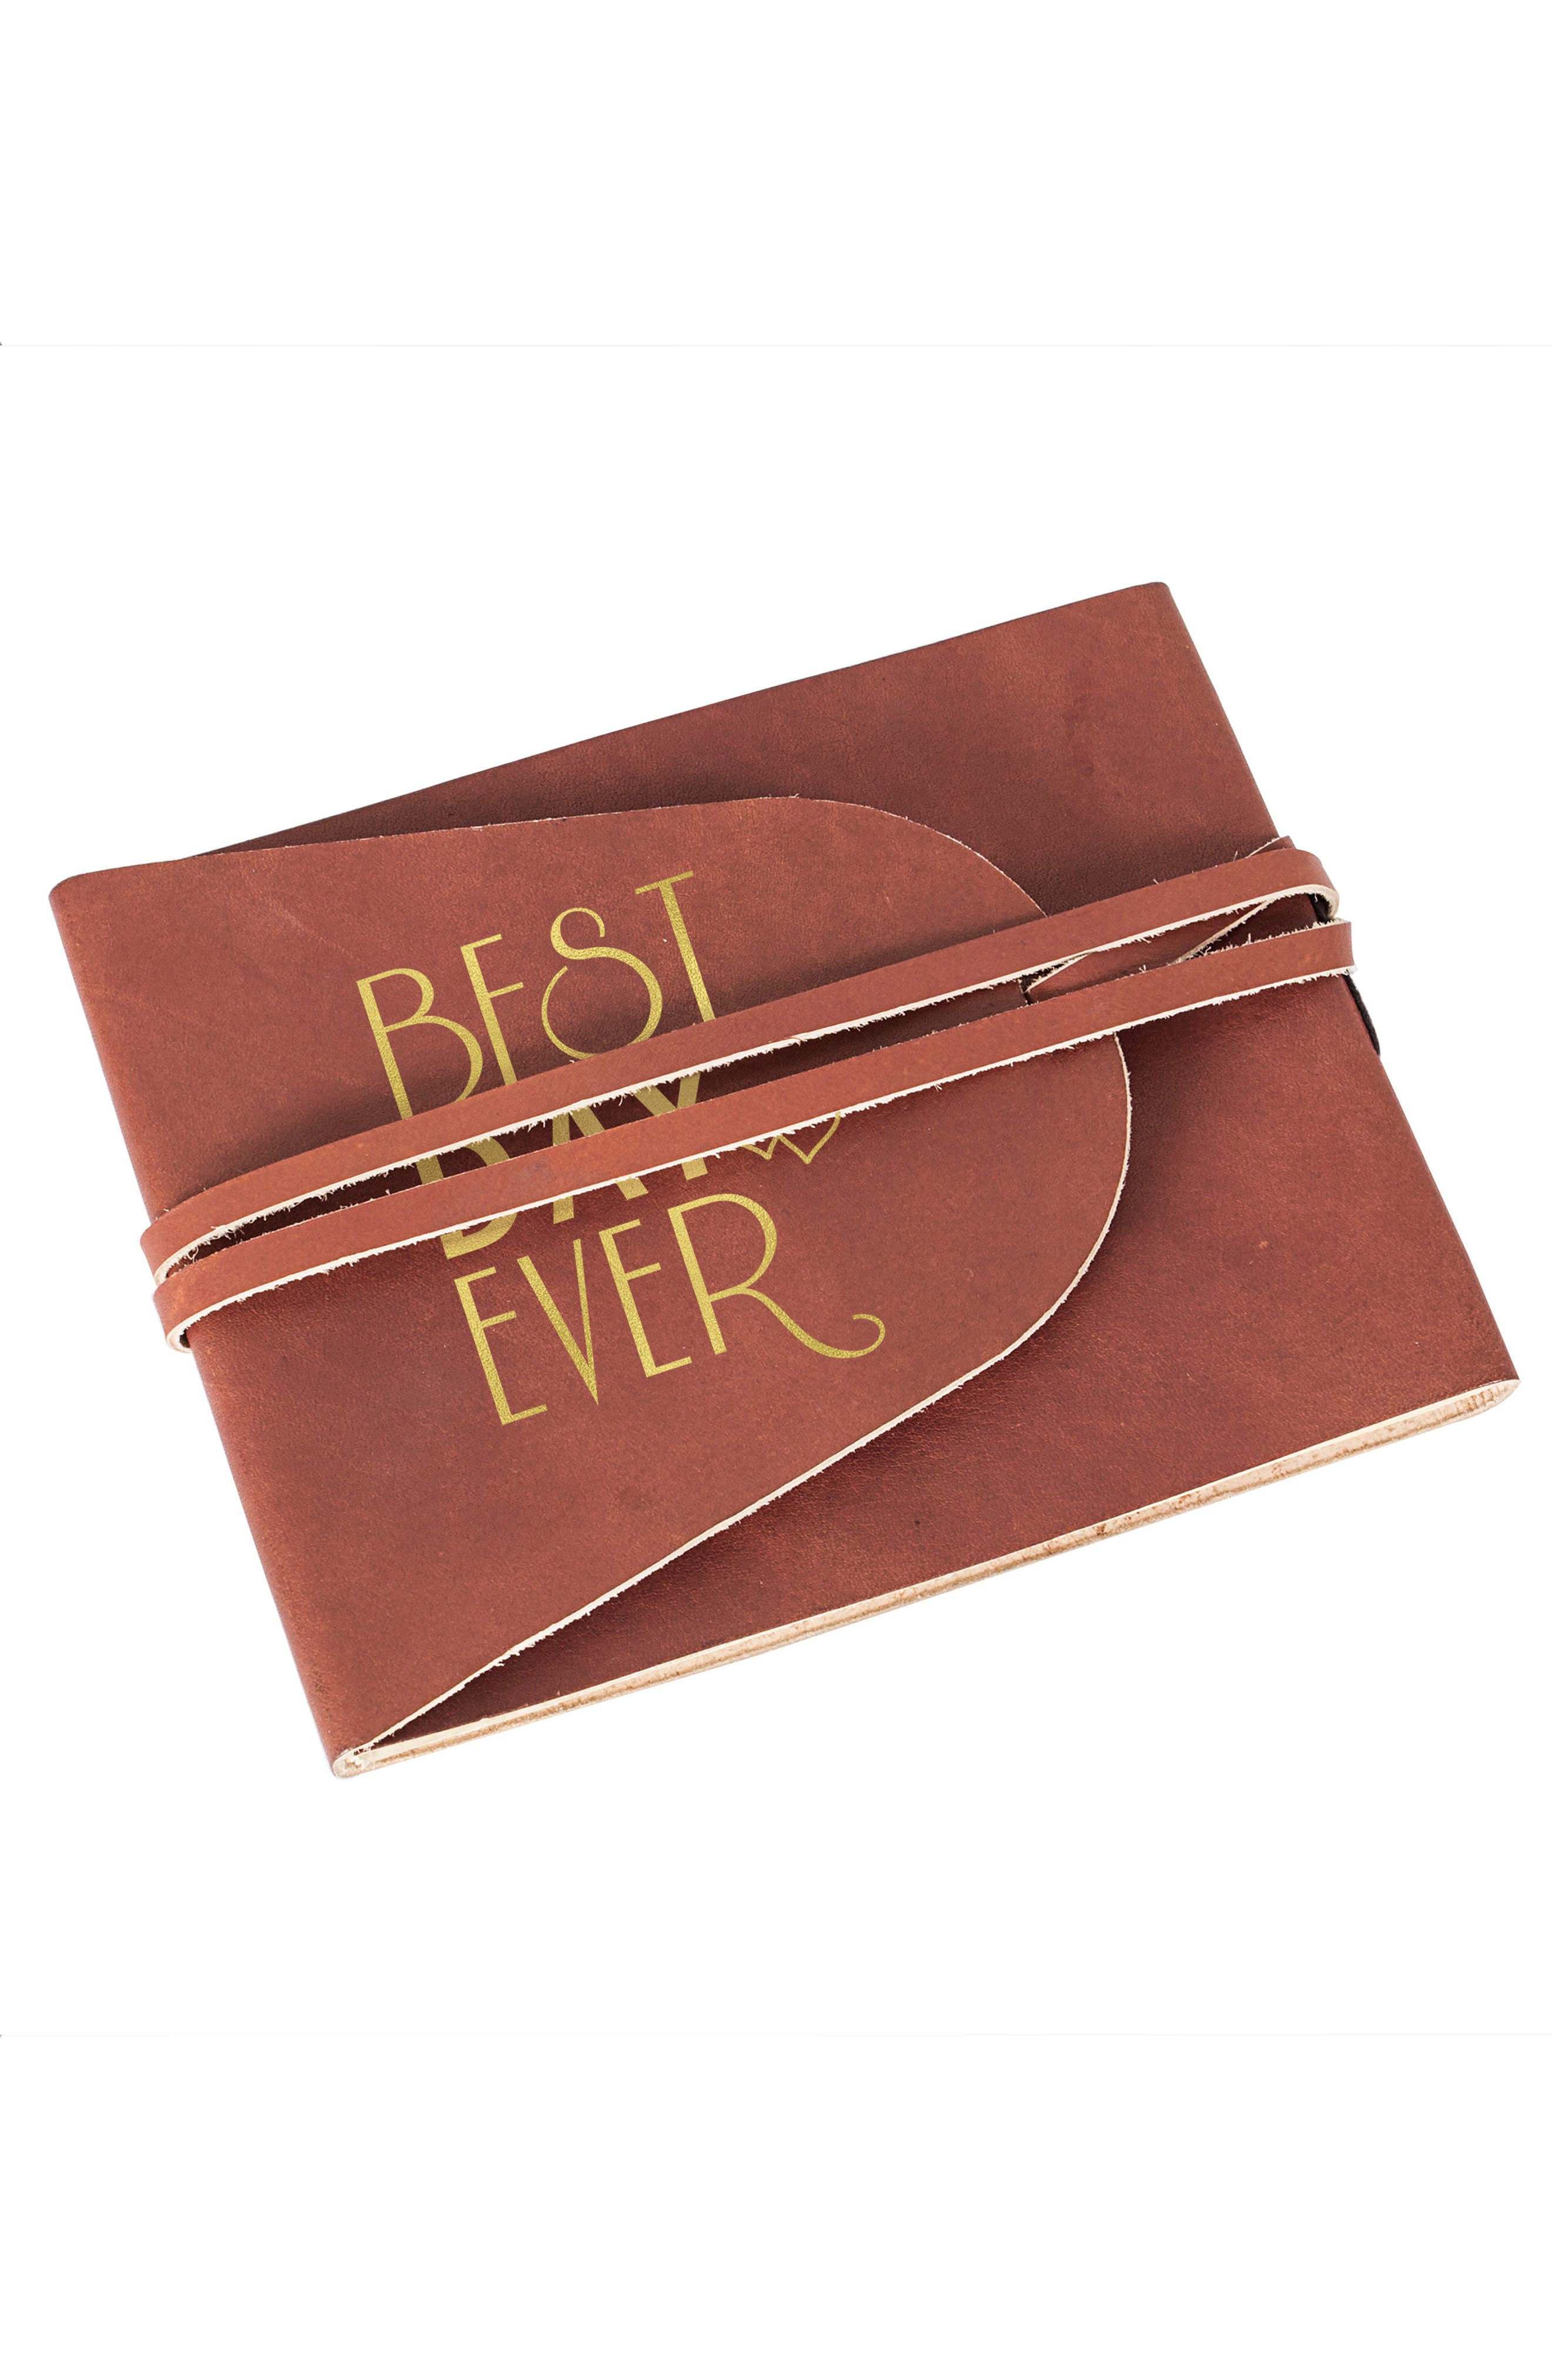 Best Day Ever Leather Guest Book,                             Alternate thumbnail 3, color,                             710